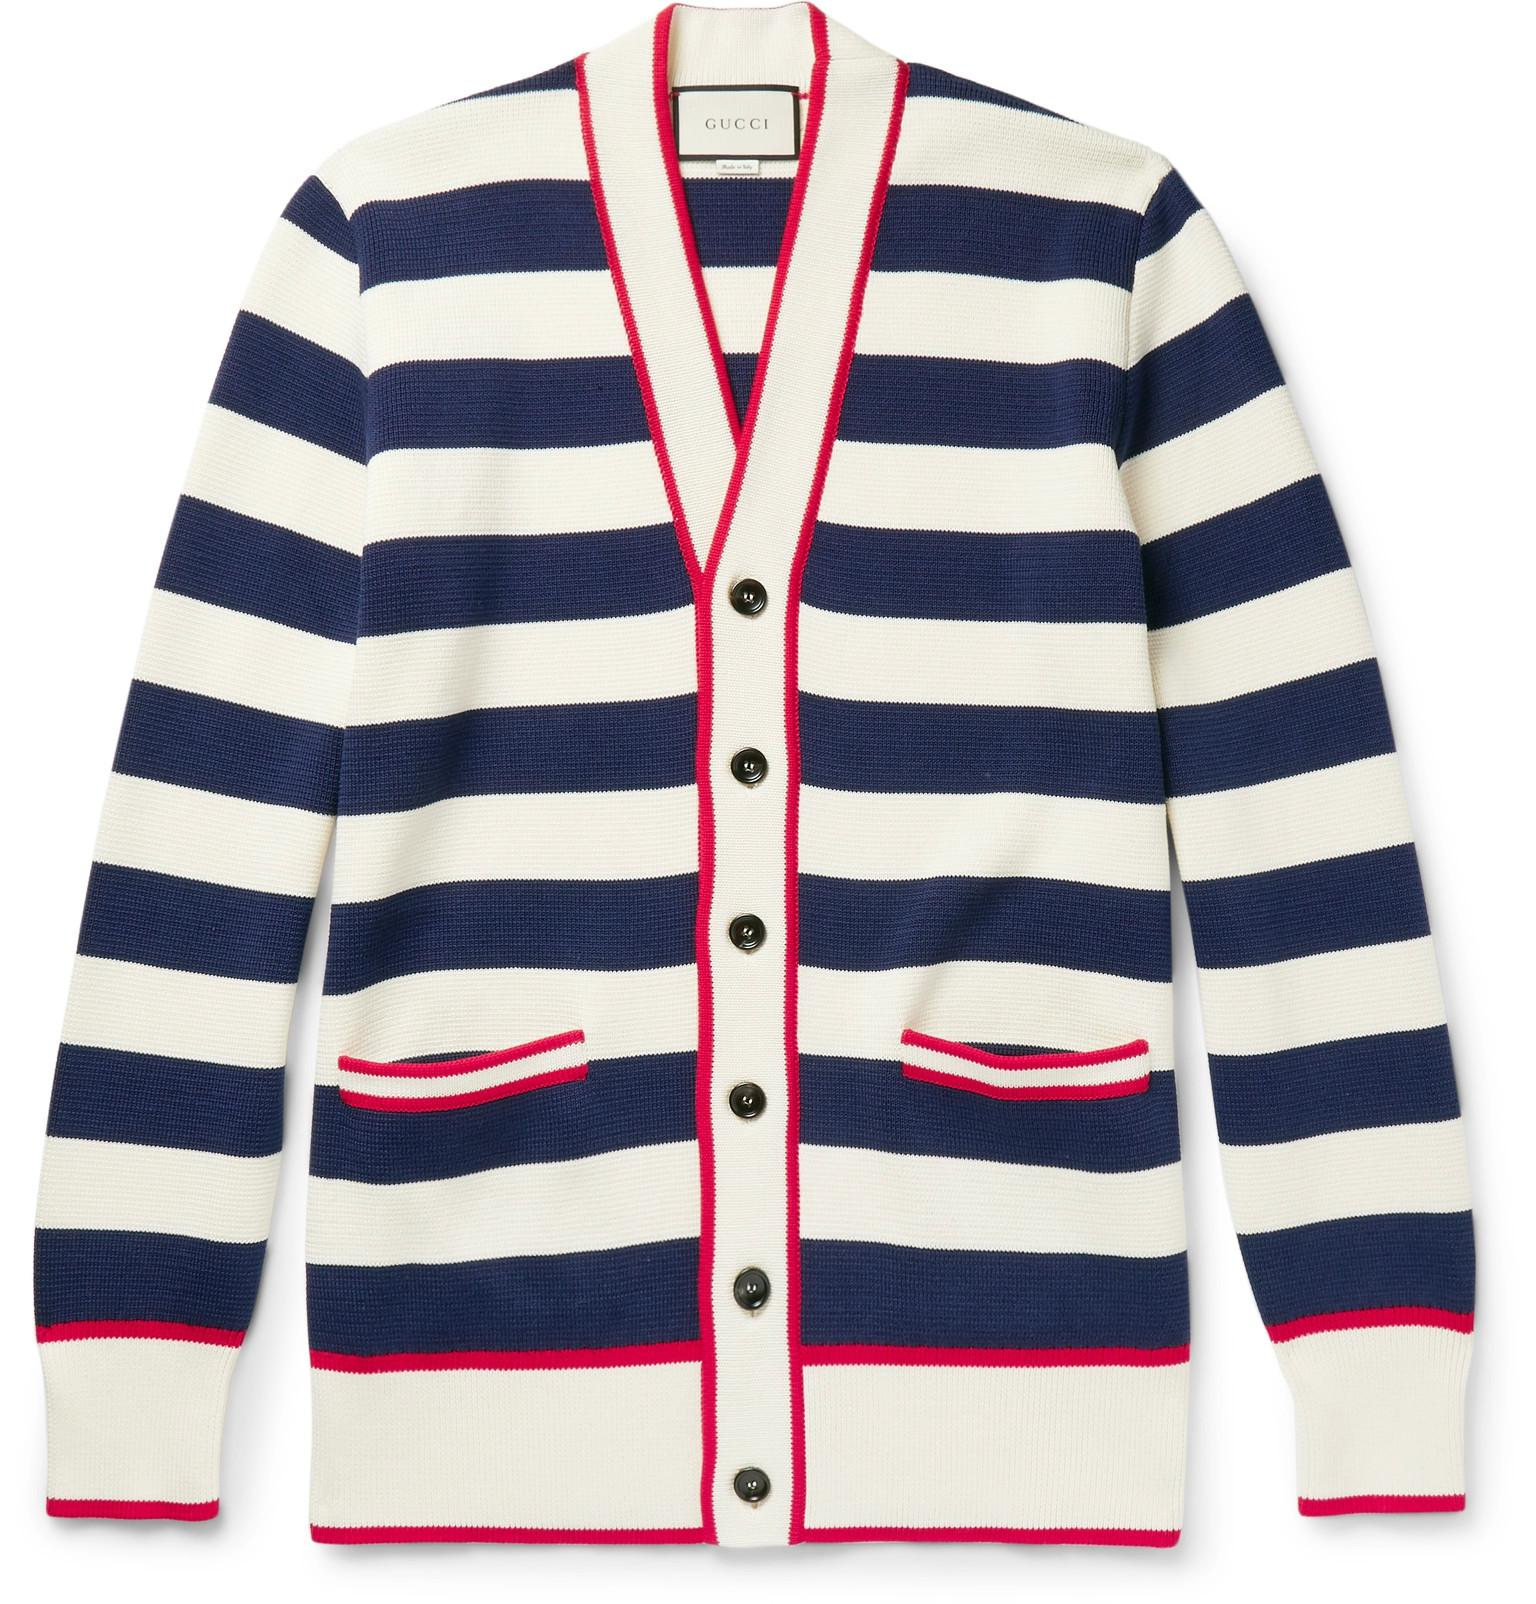 bd754c7e1ae Lyst - Gucci Embroidered Striped Cotton Cardigan in Blue for Men